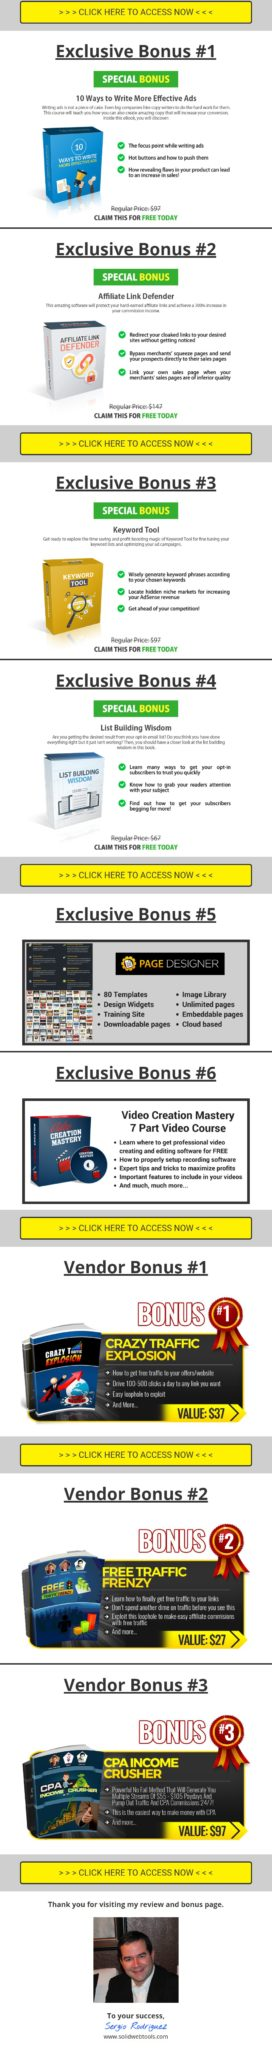 Affiliate domination blueprint review quality exclusive bonuses affiliate domination blueprint review malvernweather Images